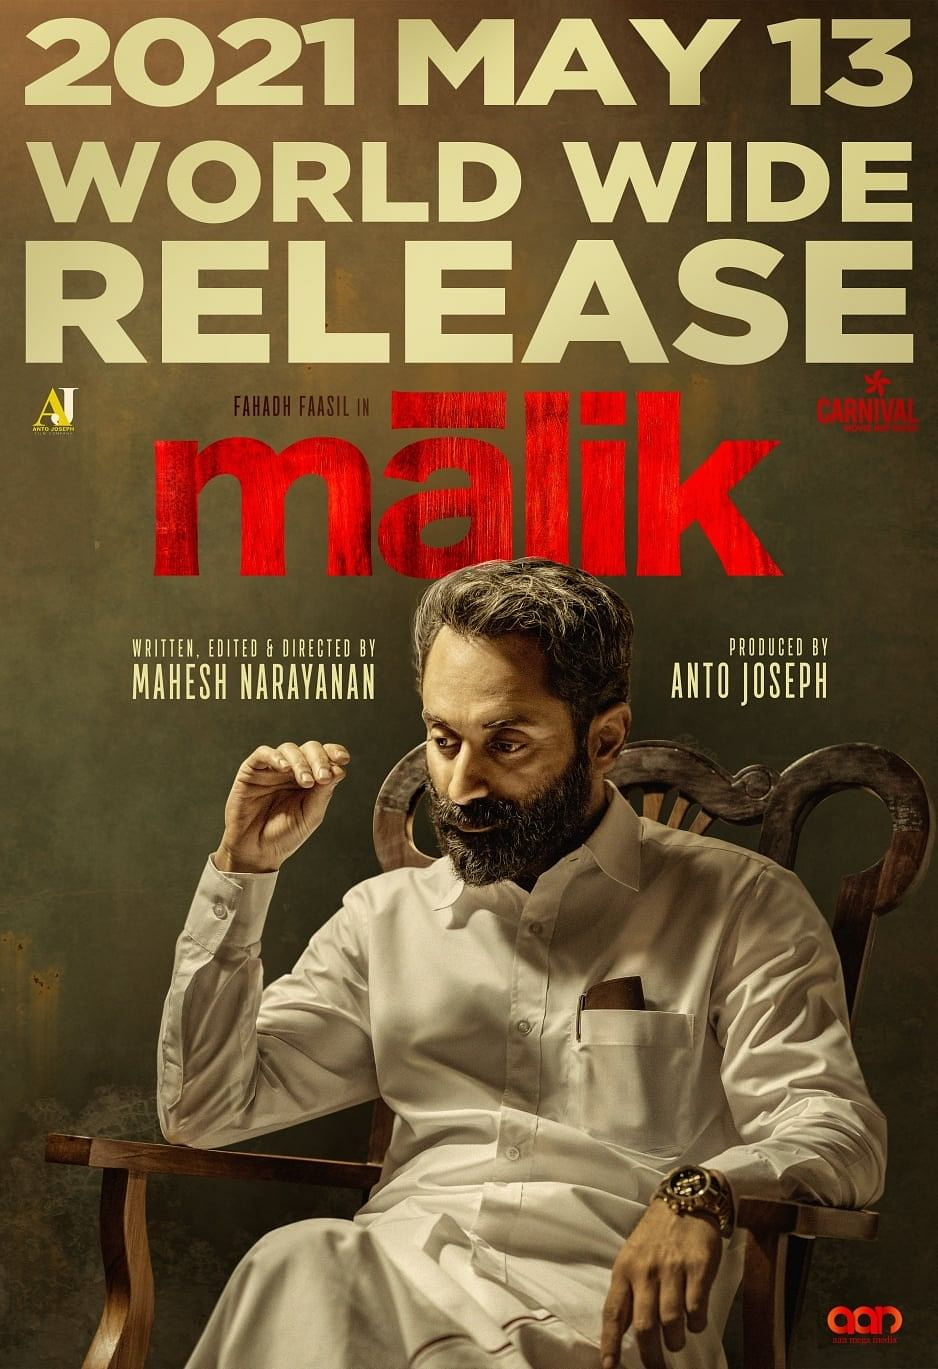 The poster for Malik